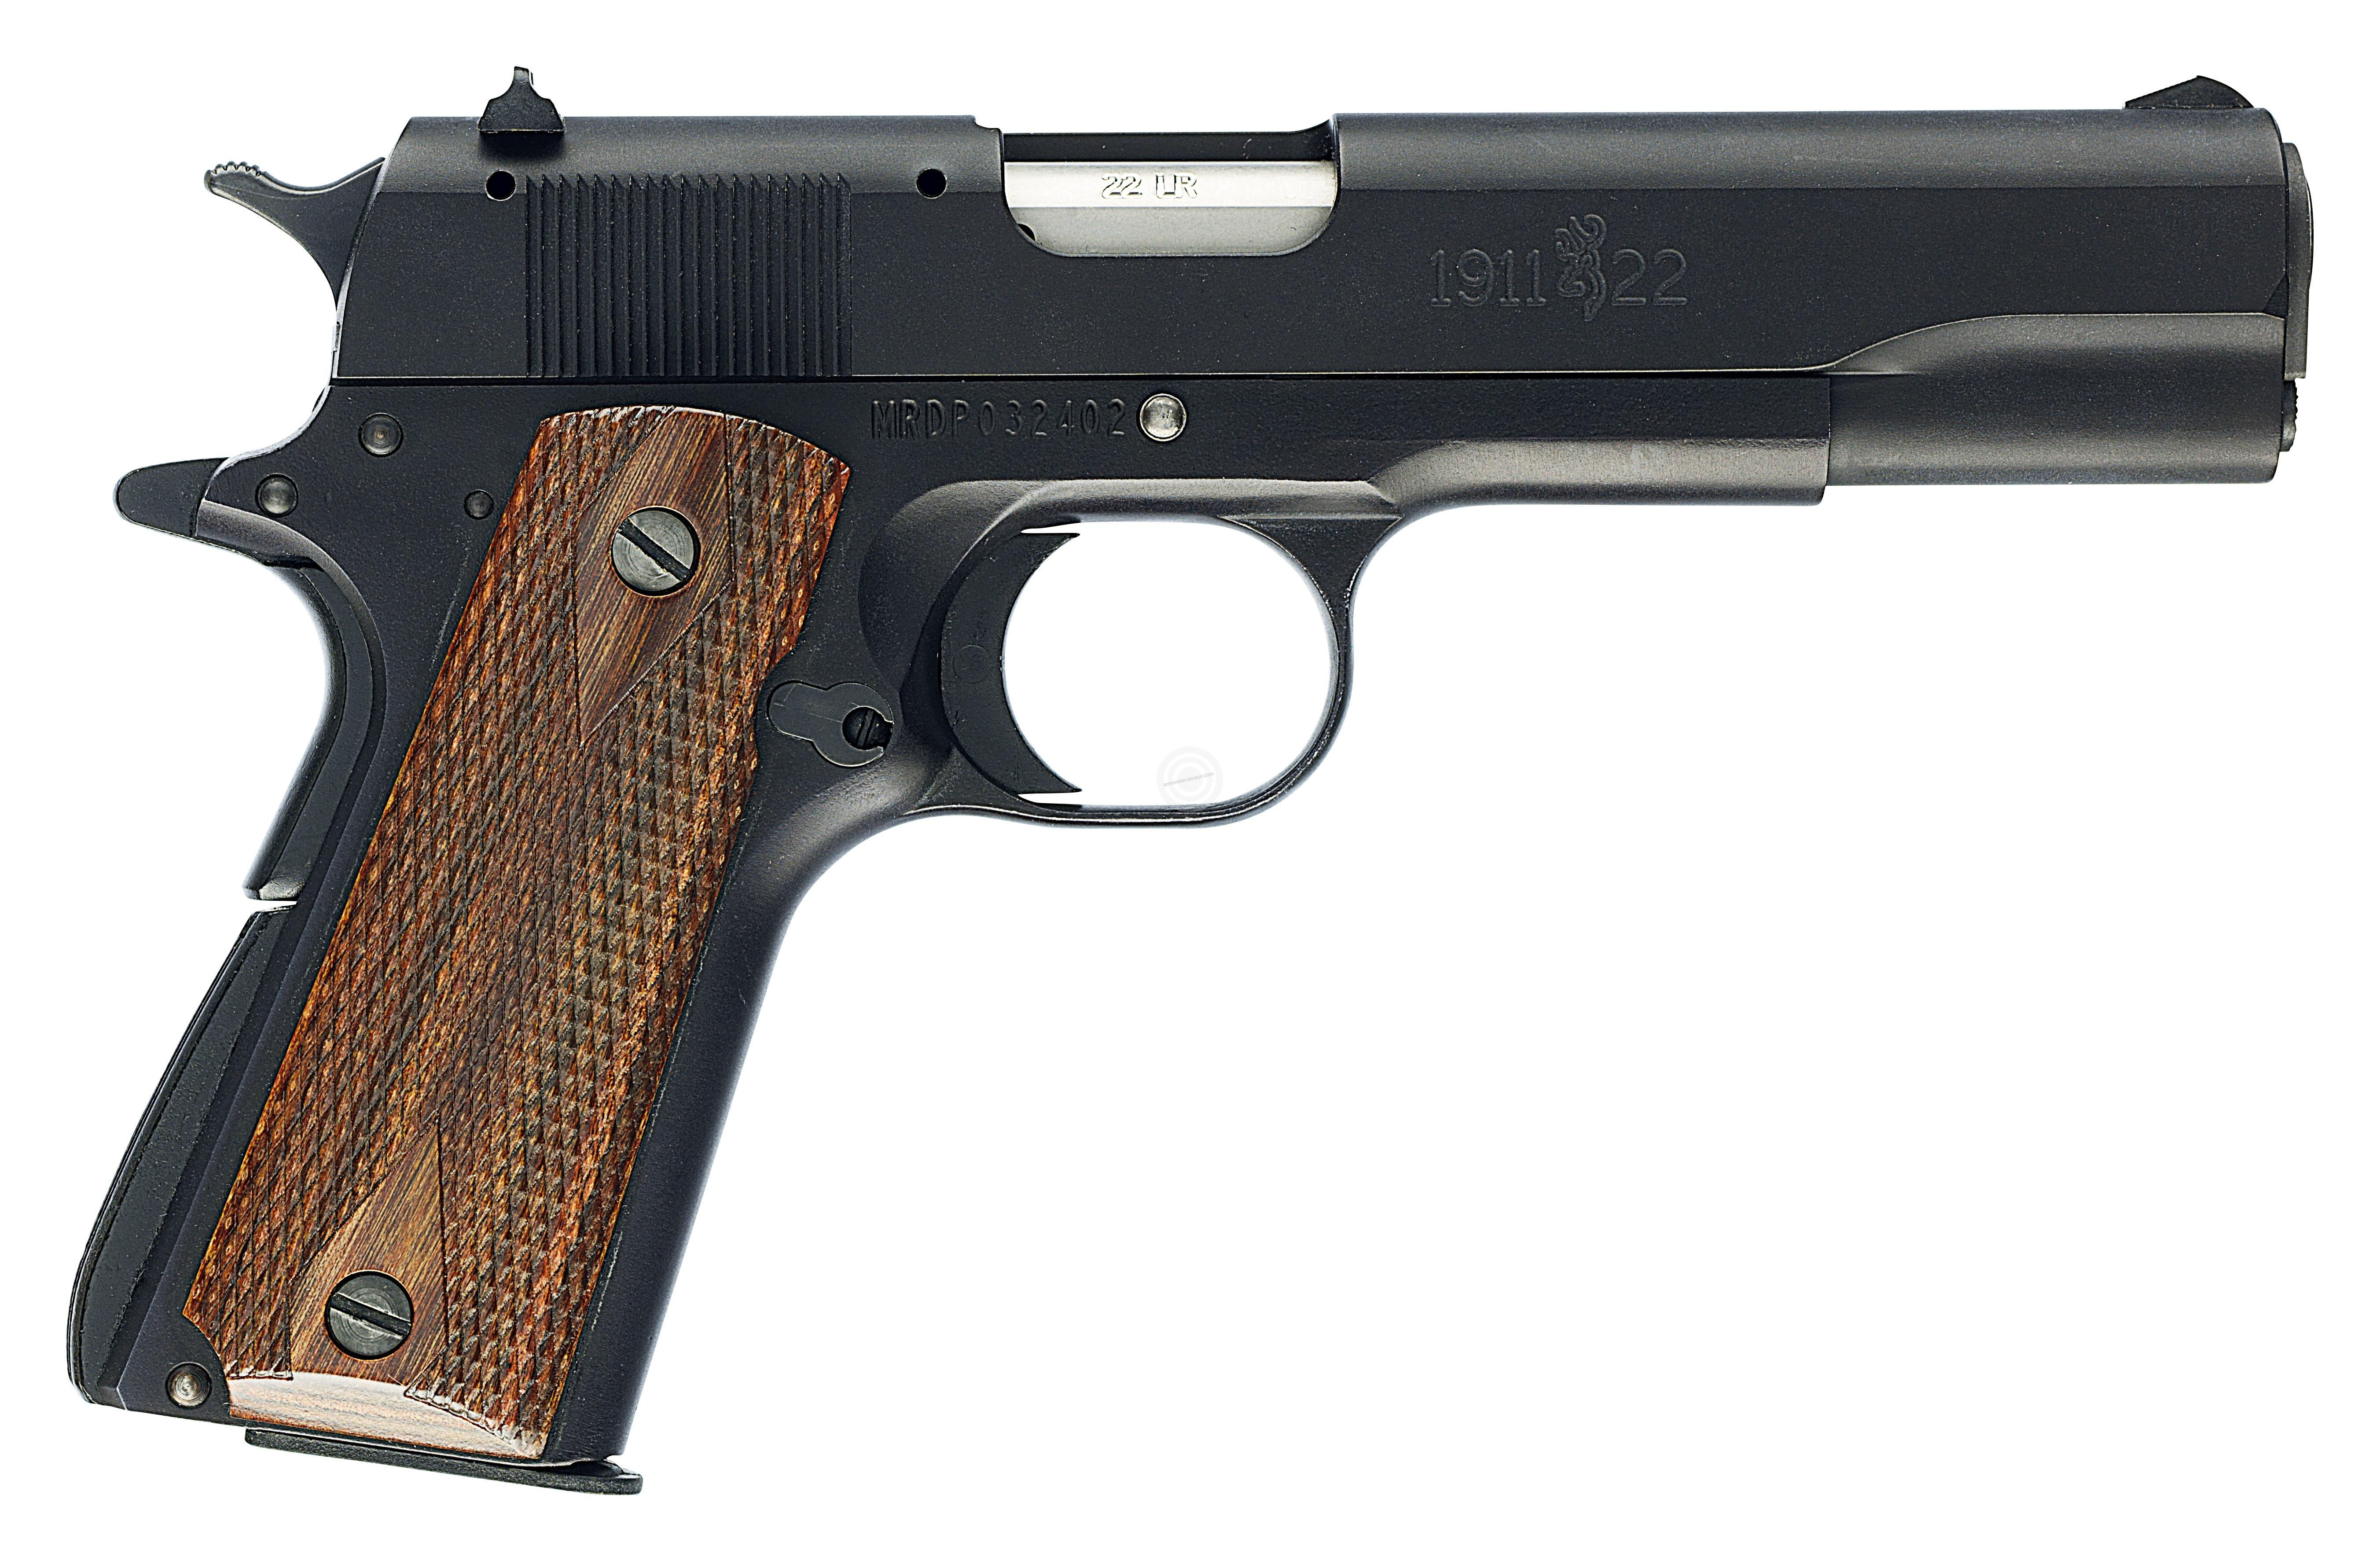 Pistolet BROWNING 1911 A1 Full Size cal.22 Lr